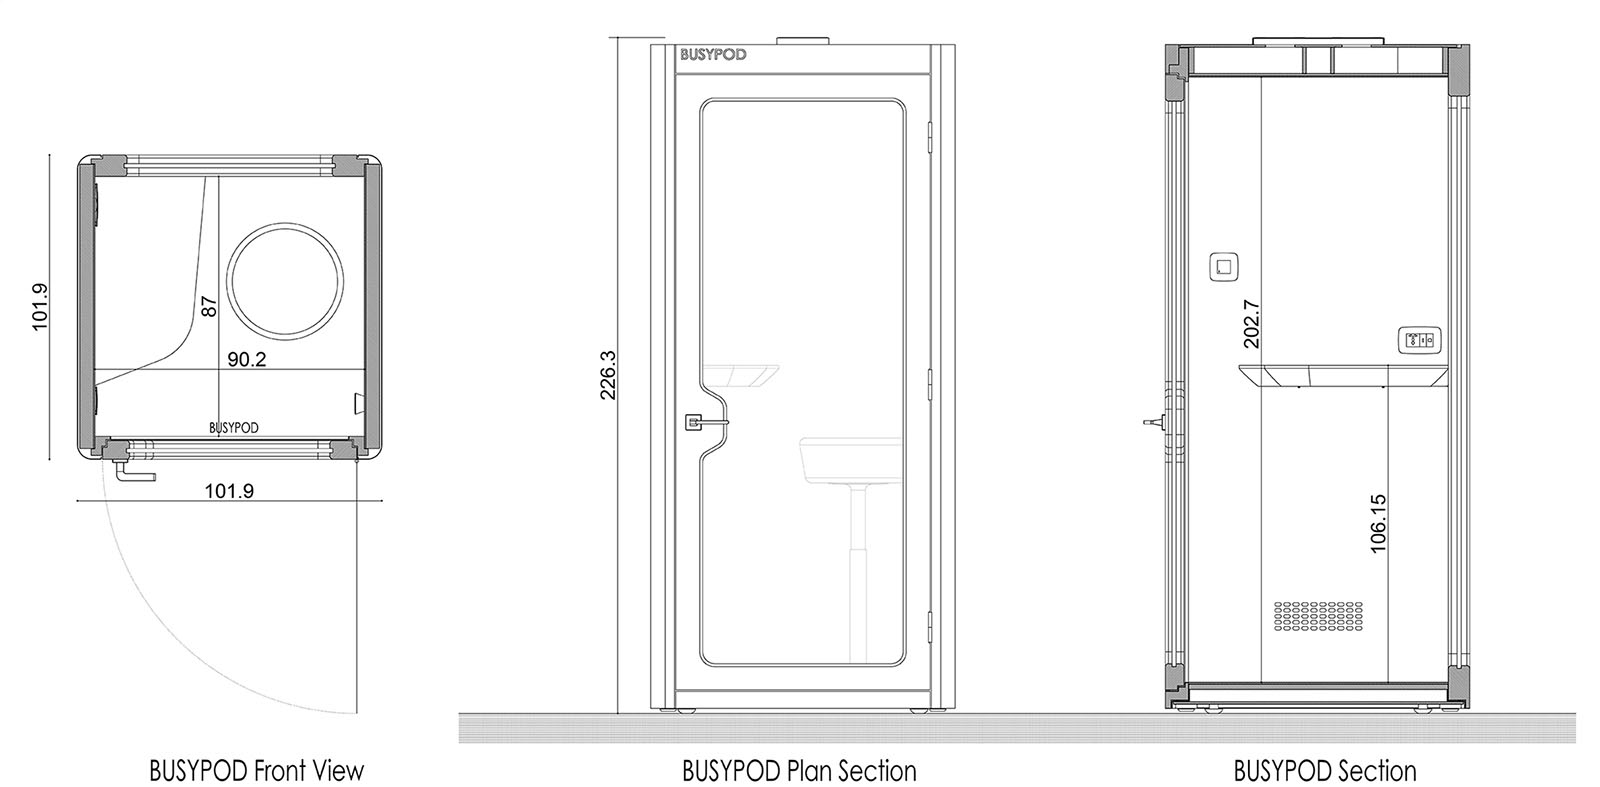 BUSYPOD Phone Booth Diagram